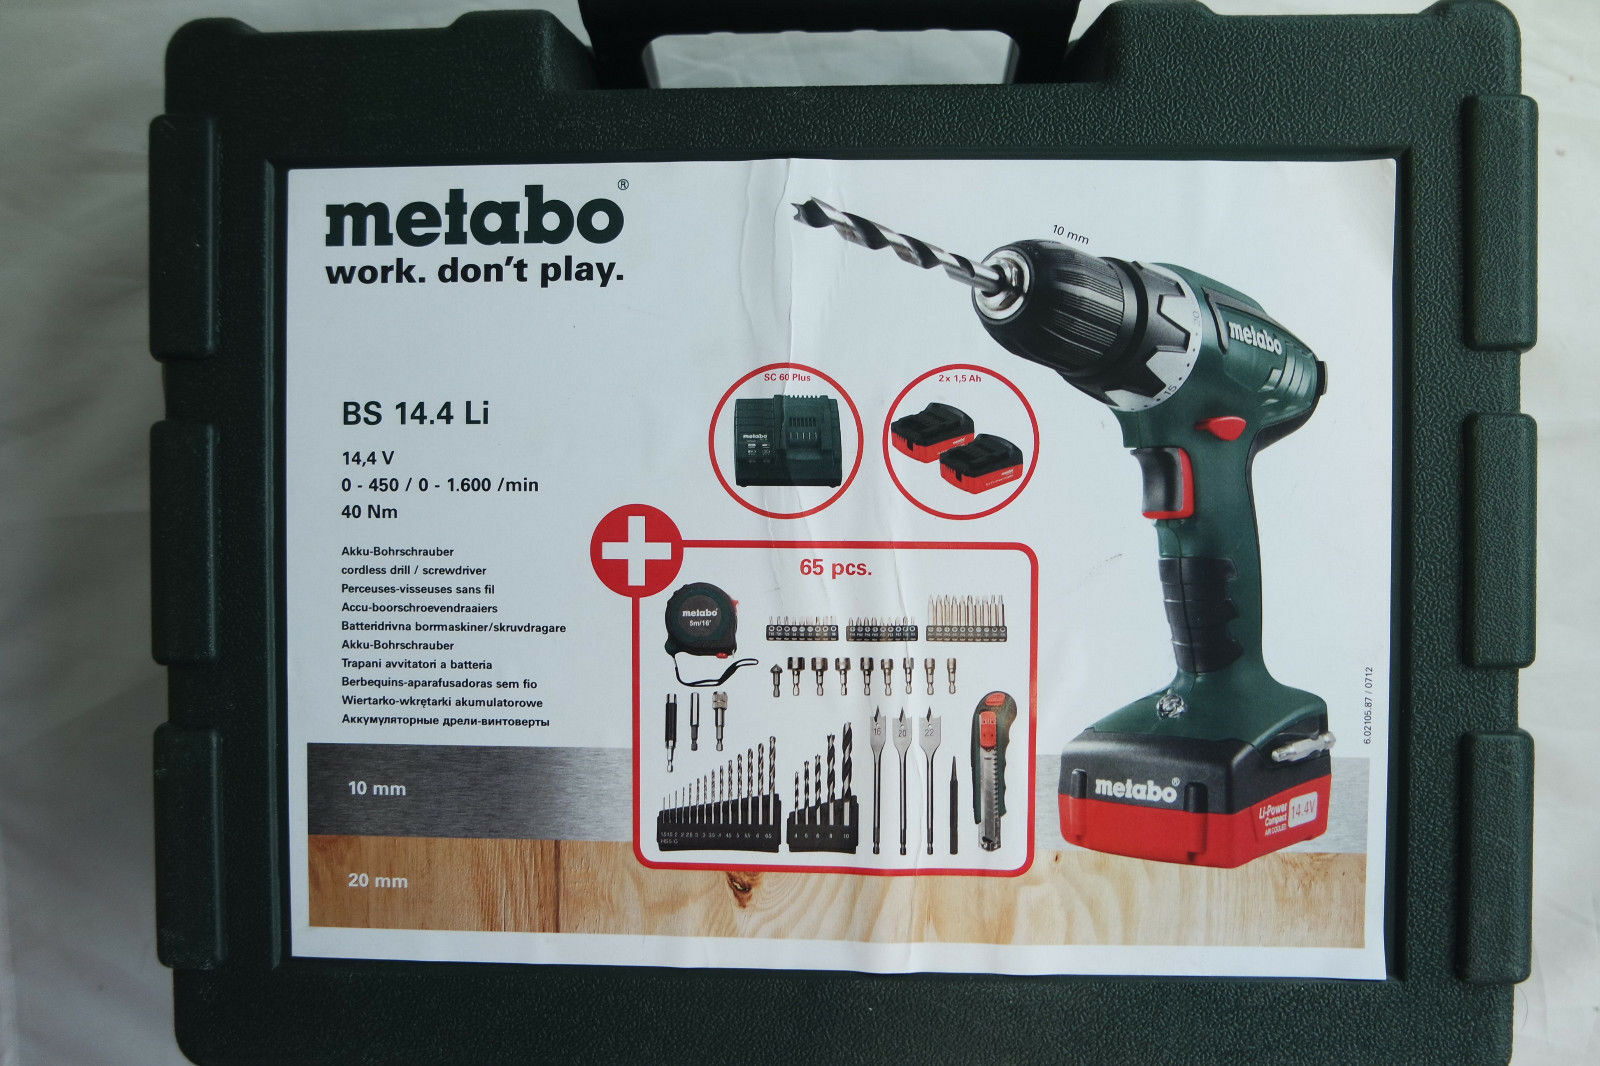 Metabo BS 14.4 Li Mobile Werkstatt Set 2x1,5Ah SC 60 Plus